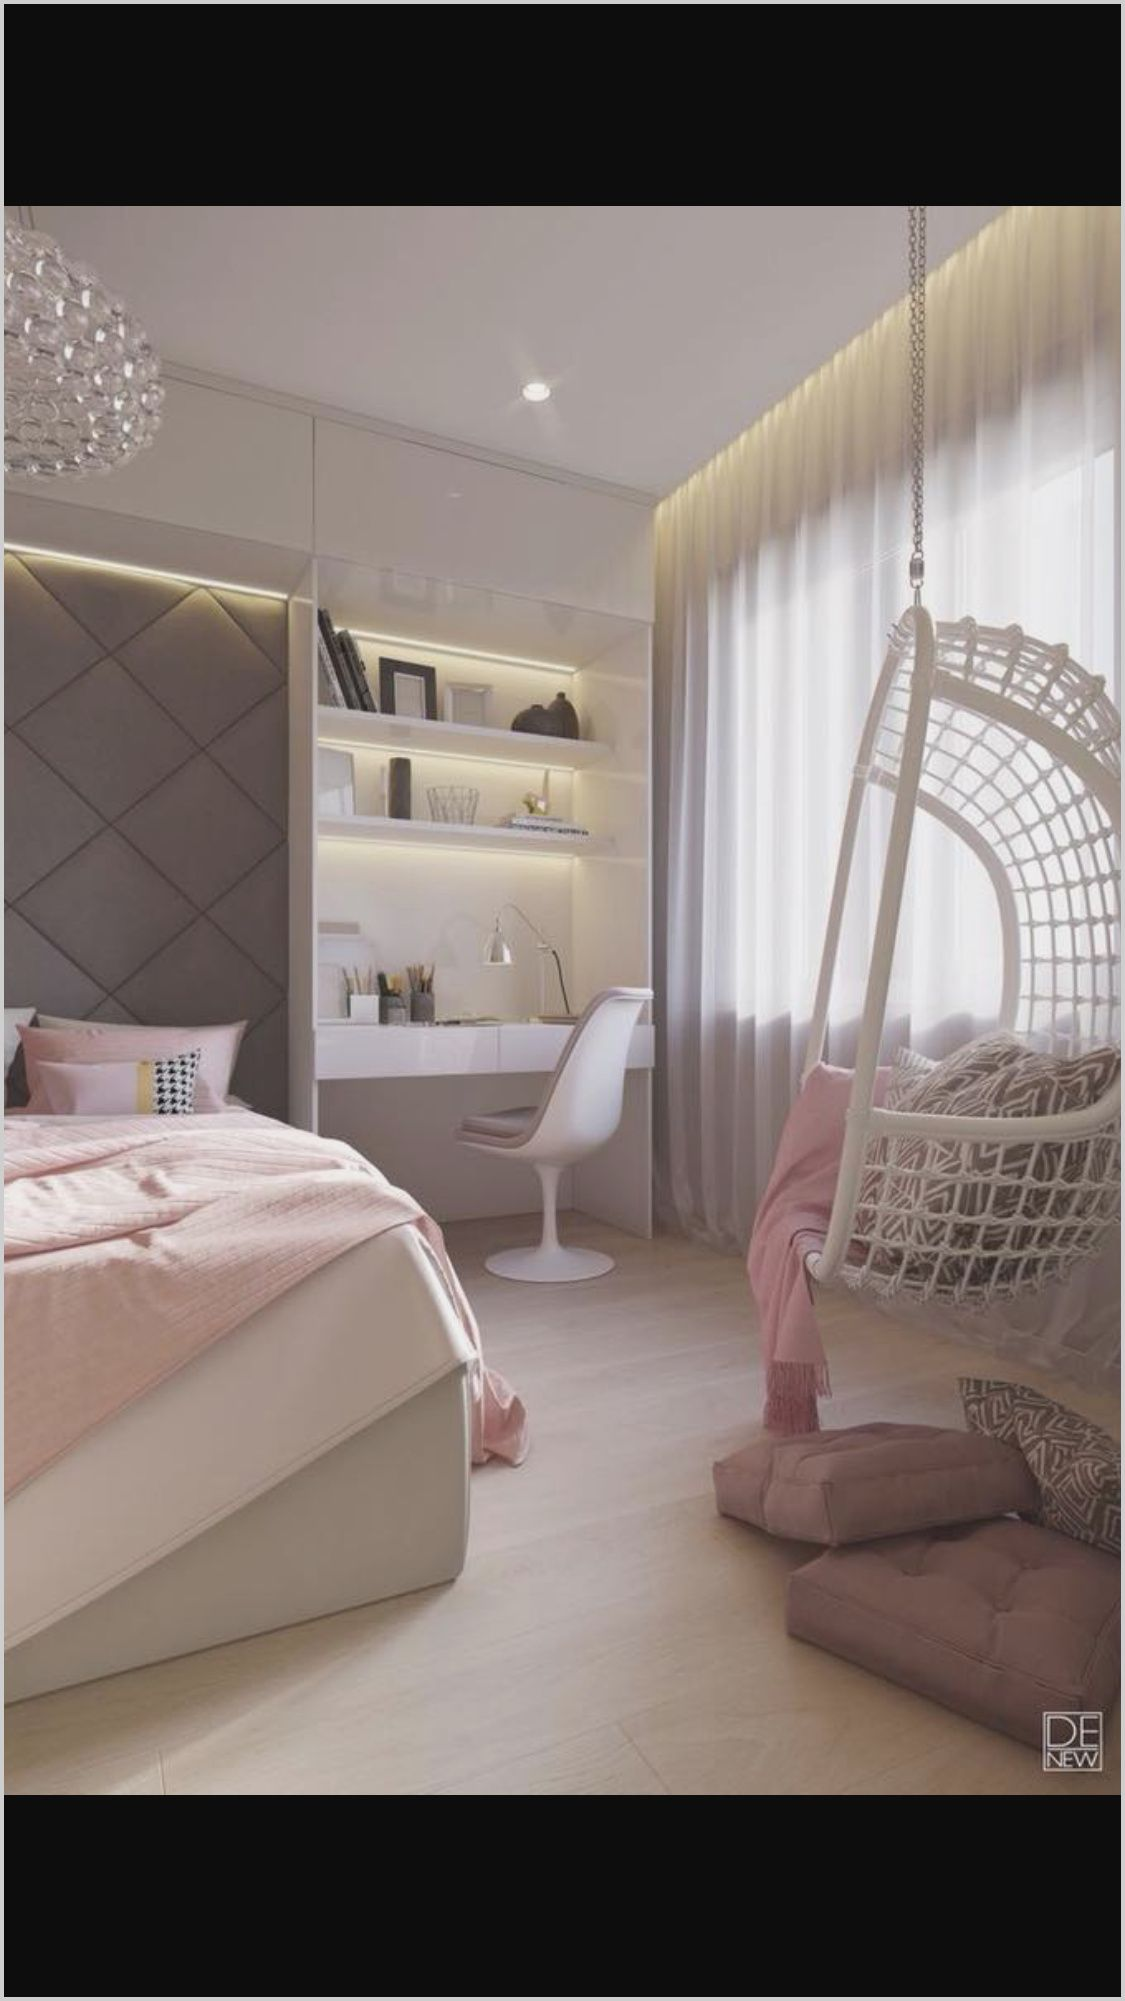 Dream Bedroom Ideas for Girls - Bedroom : Home Decorating Ideas #47470